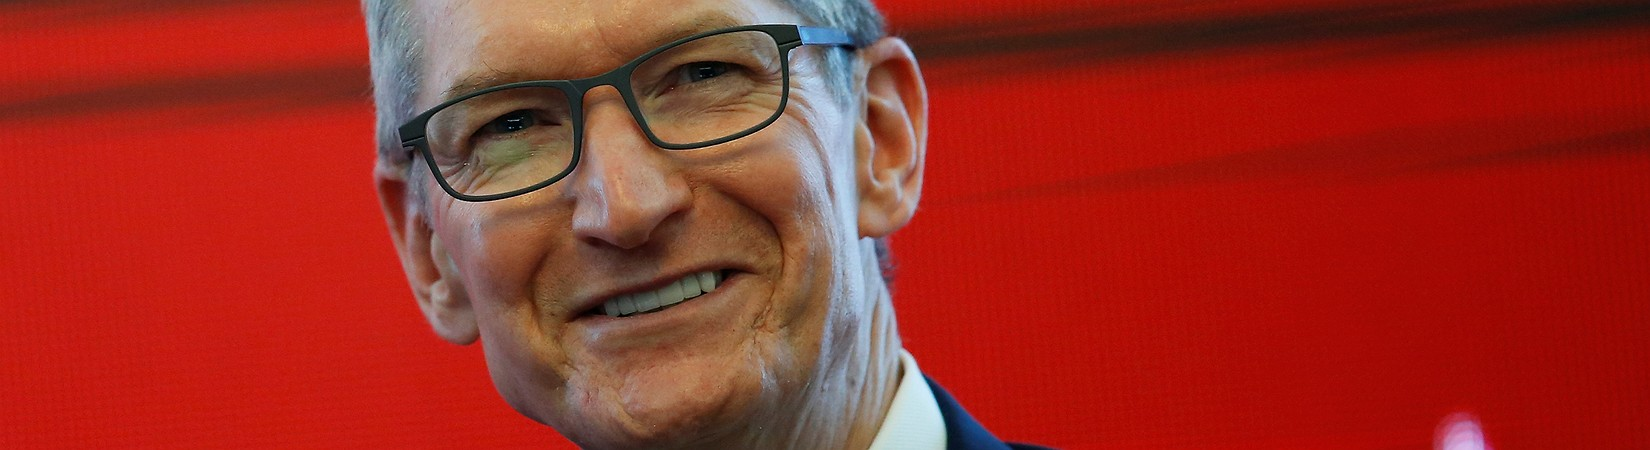 How Apple can take its market cap to $1 trillion